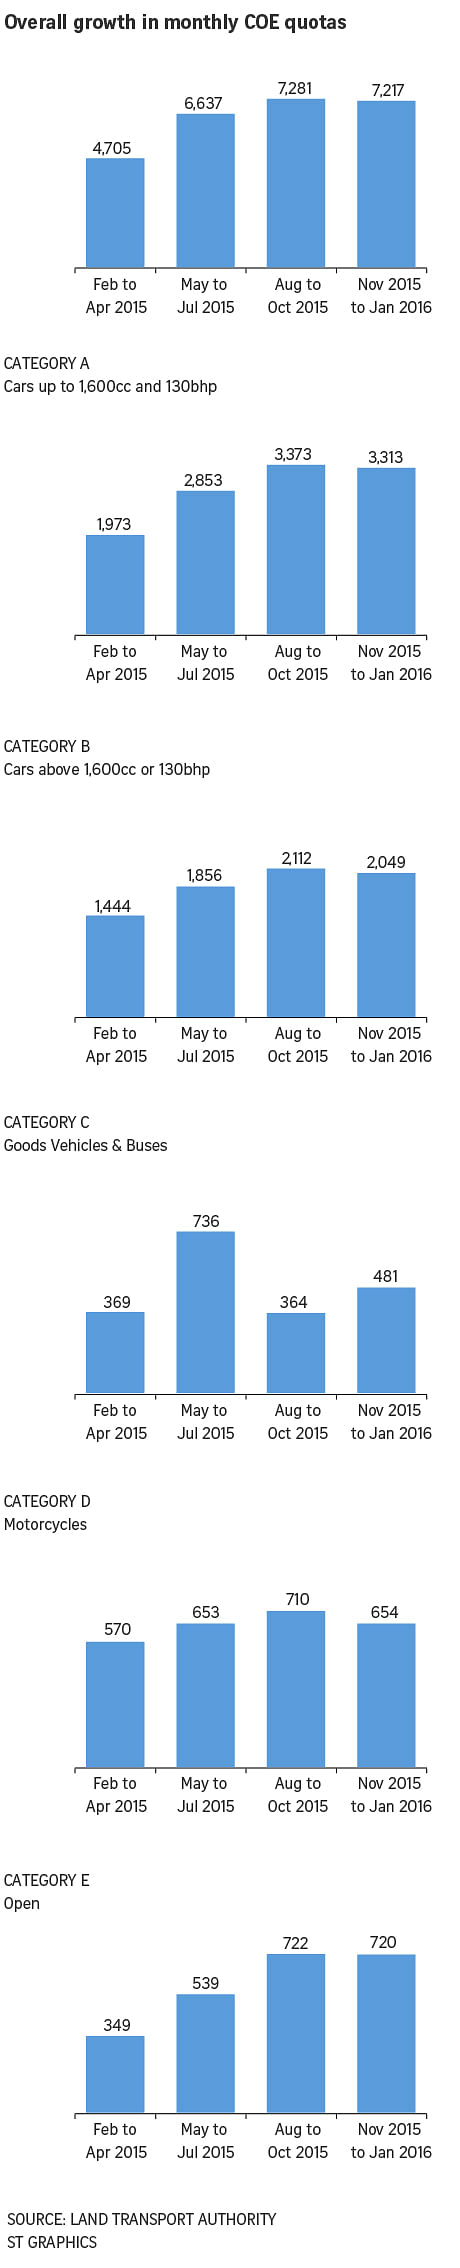 Overall growth in monthly COE quotas graphic